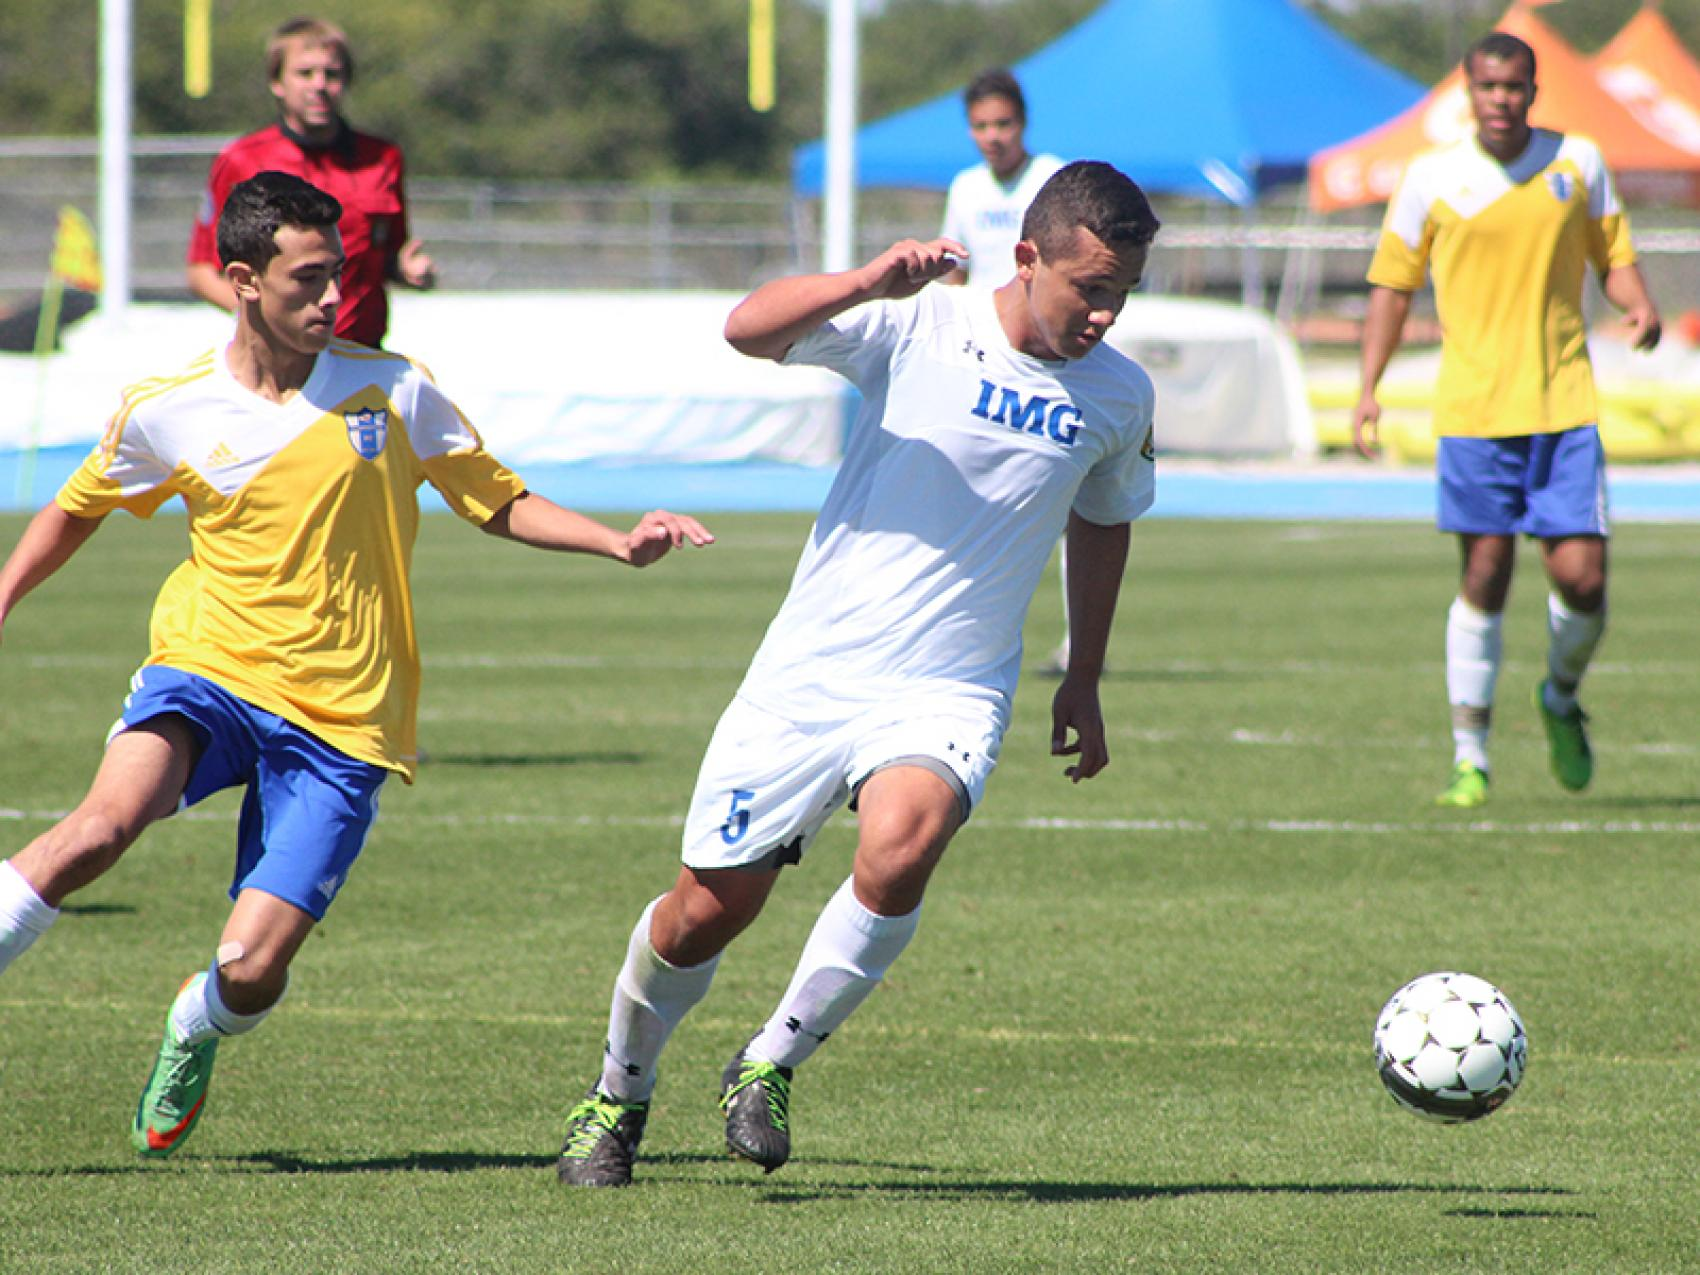 Img: IMG Cup - College Showcase